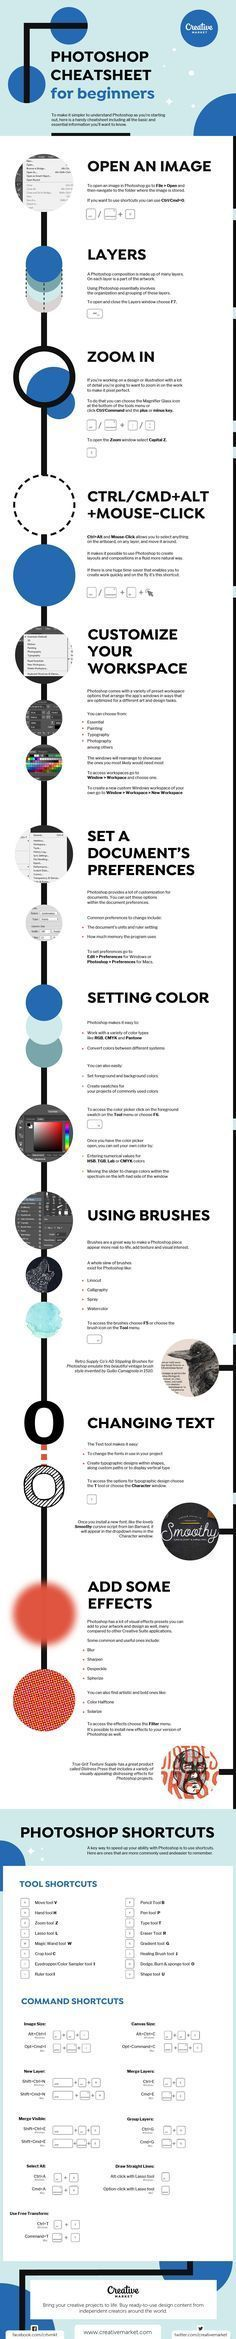 #Photoshop #Cheatsheet for beginners [#infographic]